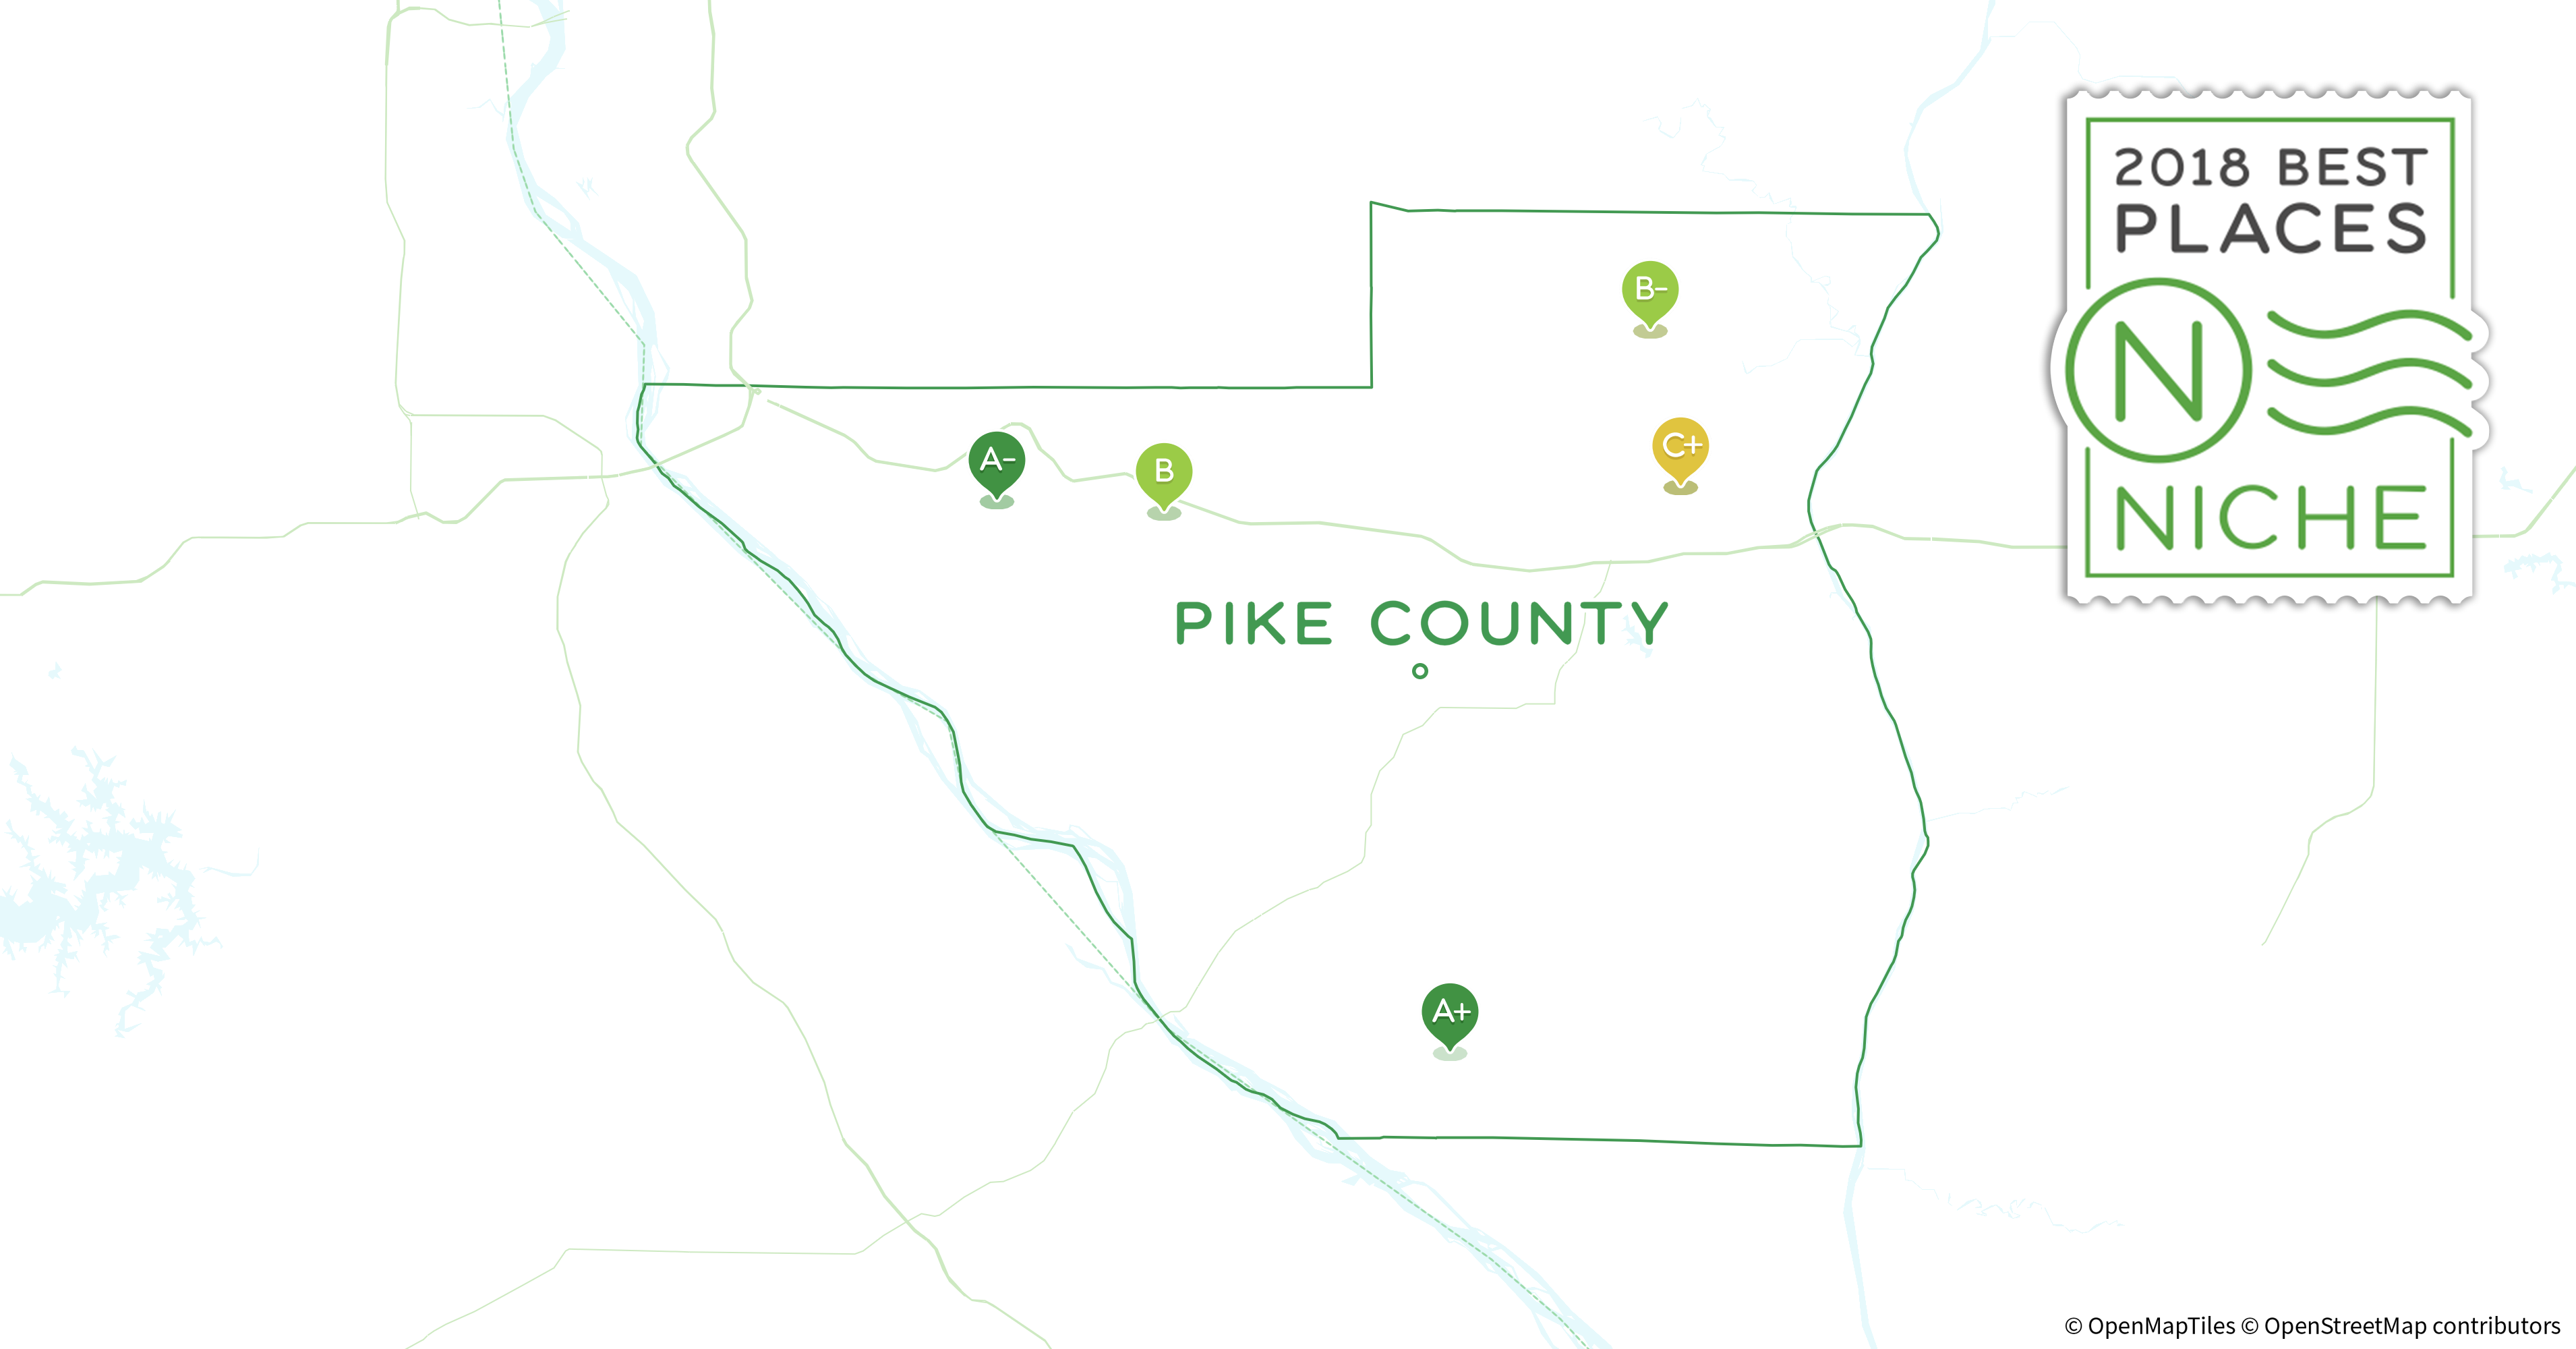 2018 Best Places To Live In Pike County Il Niche